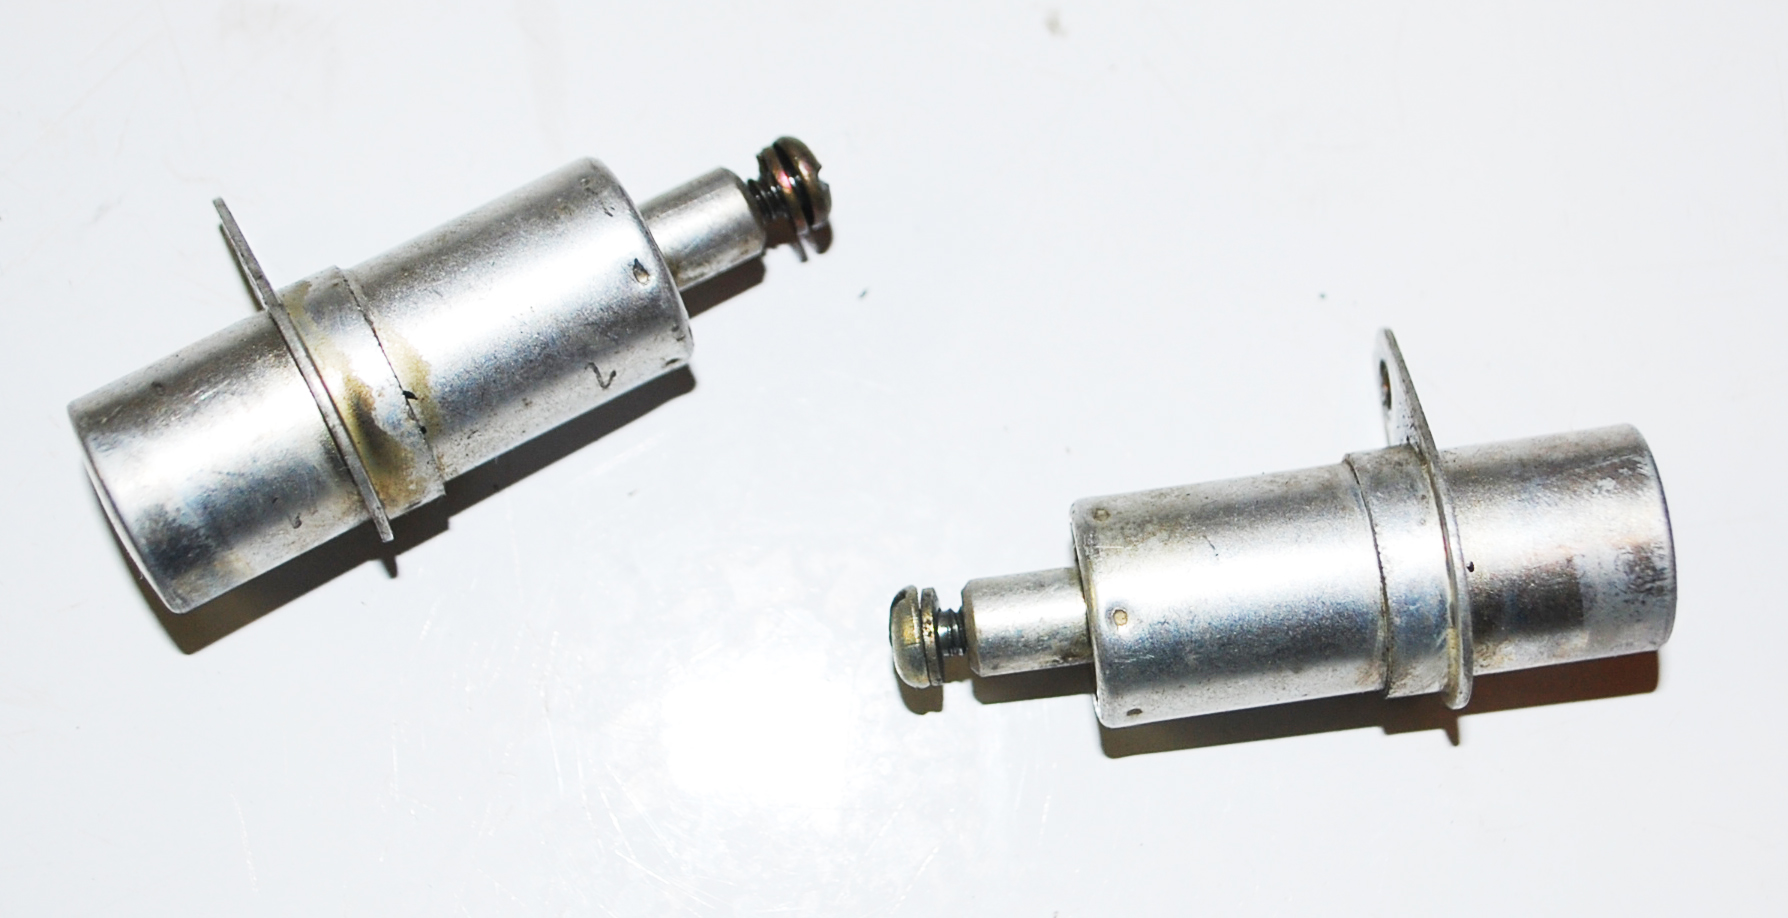 1954-56 Scott-Atwater 10 HP Outboard Parts